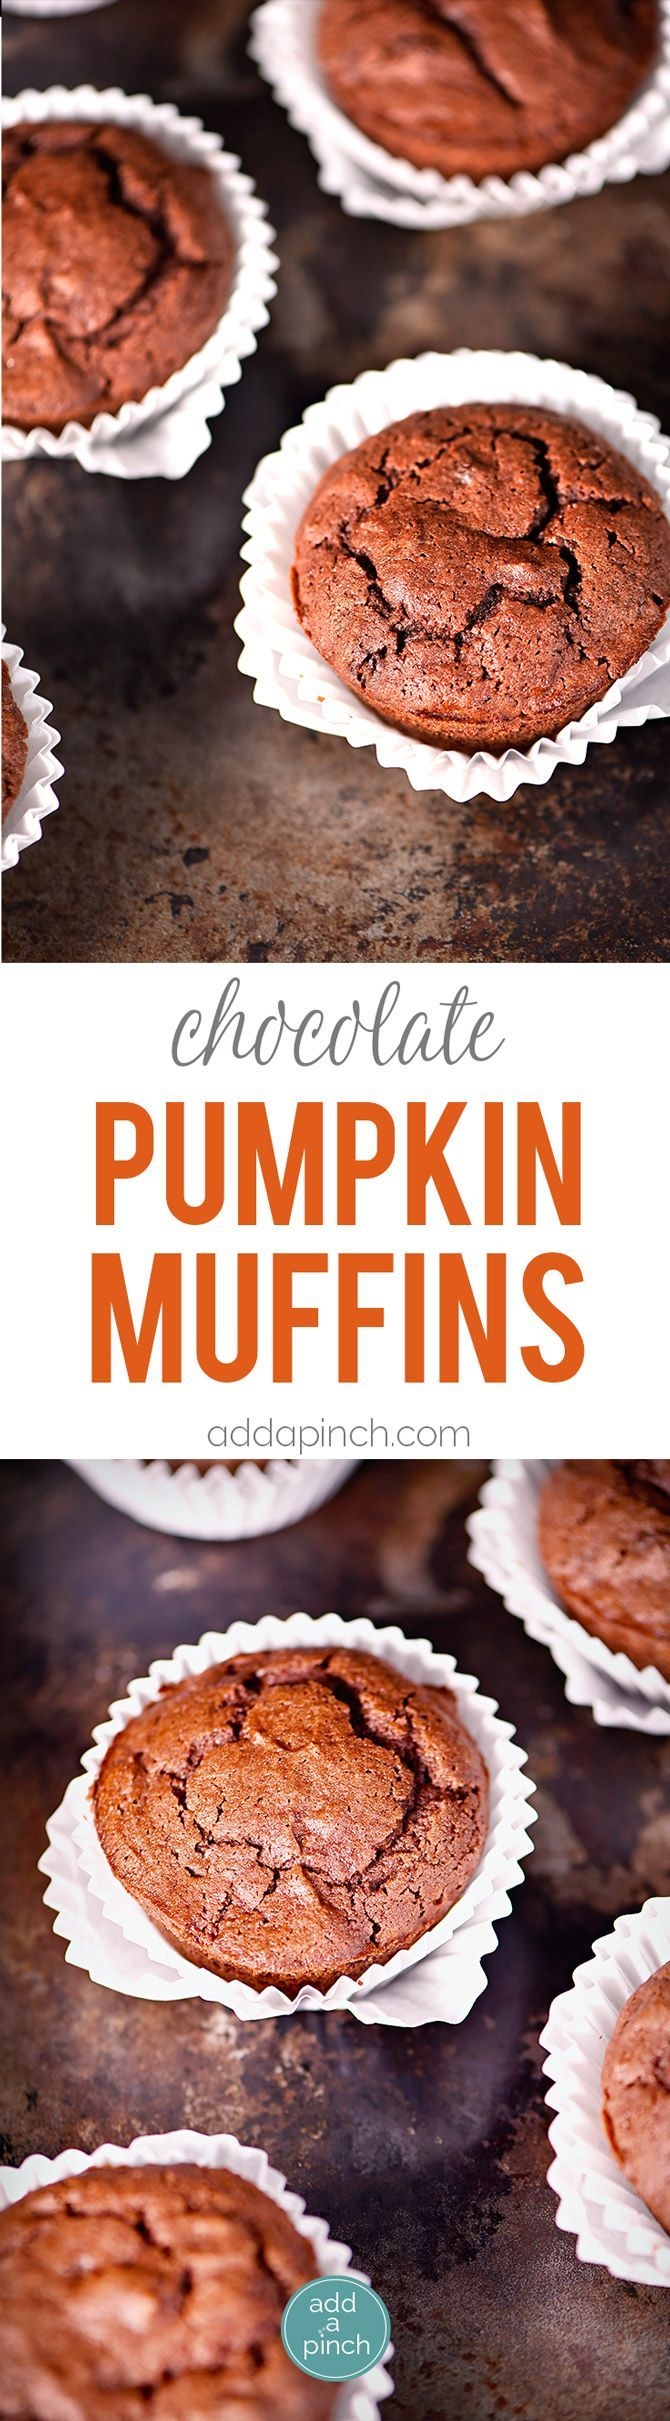 Pumpkin Chocolate Chocolate Chip Muffins make a special treat for breakfast, brunch or an afternoon snack! These are a definite fall favorite! // http://addapinch.com